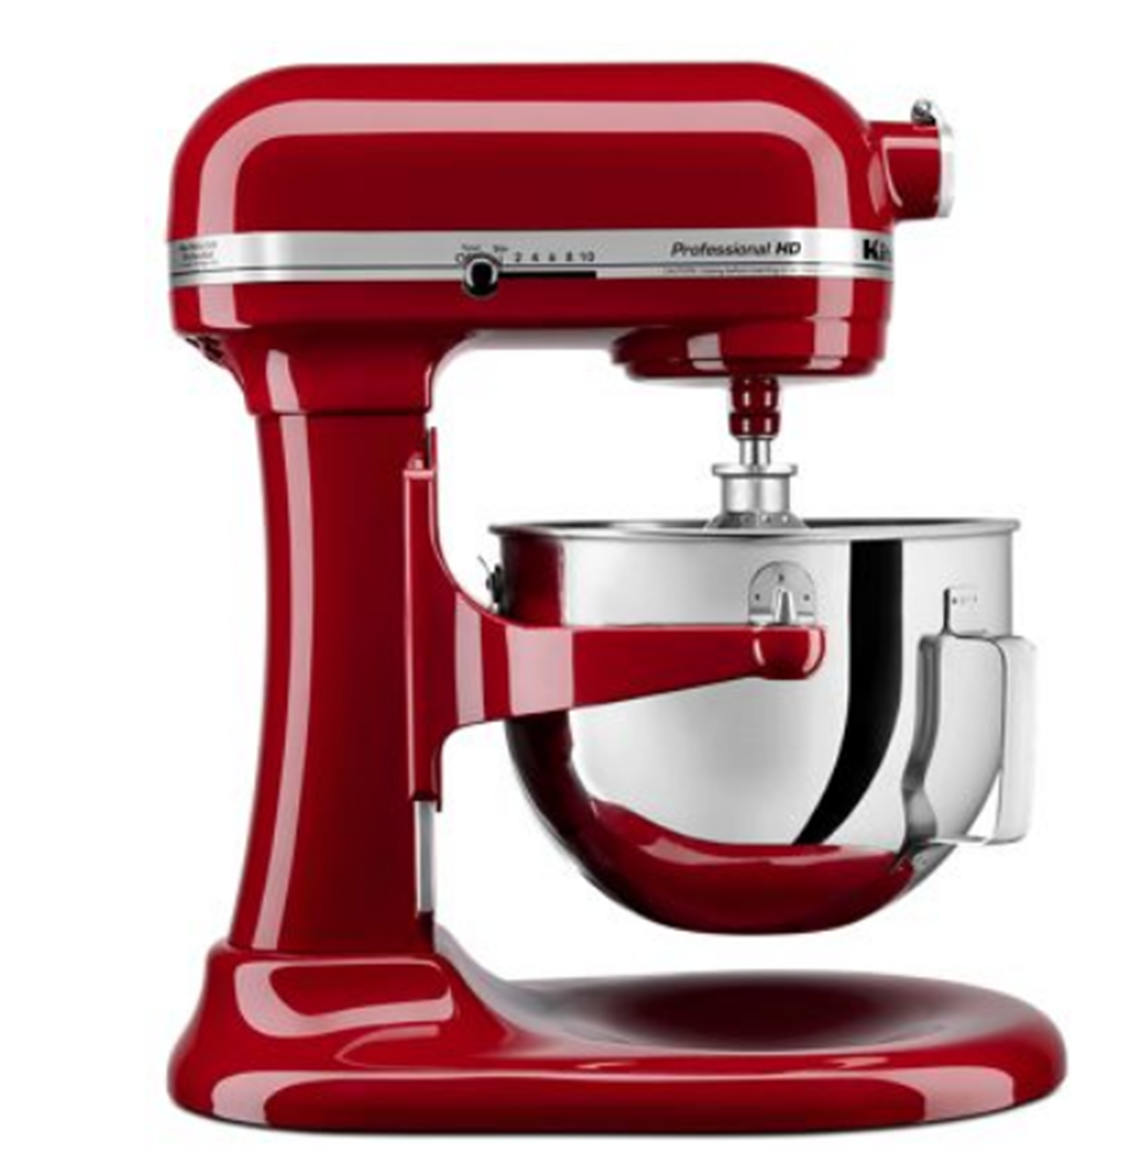 Kitchenaid Professional HD Series 5 Quart Bowl-Lift Stand Mixer Only $179.00, Reg $319.00 + Free Shipping!